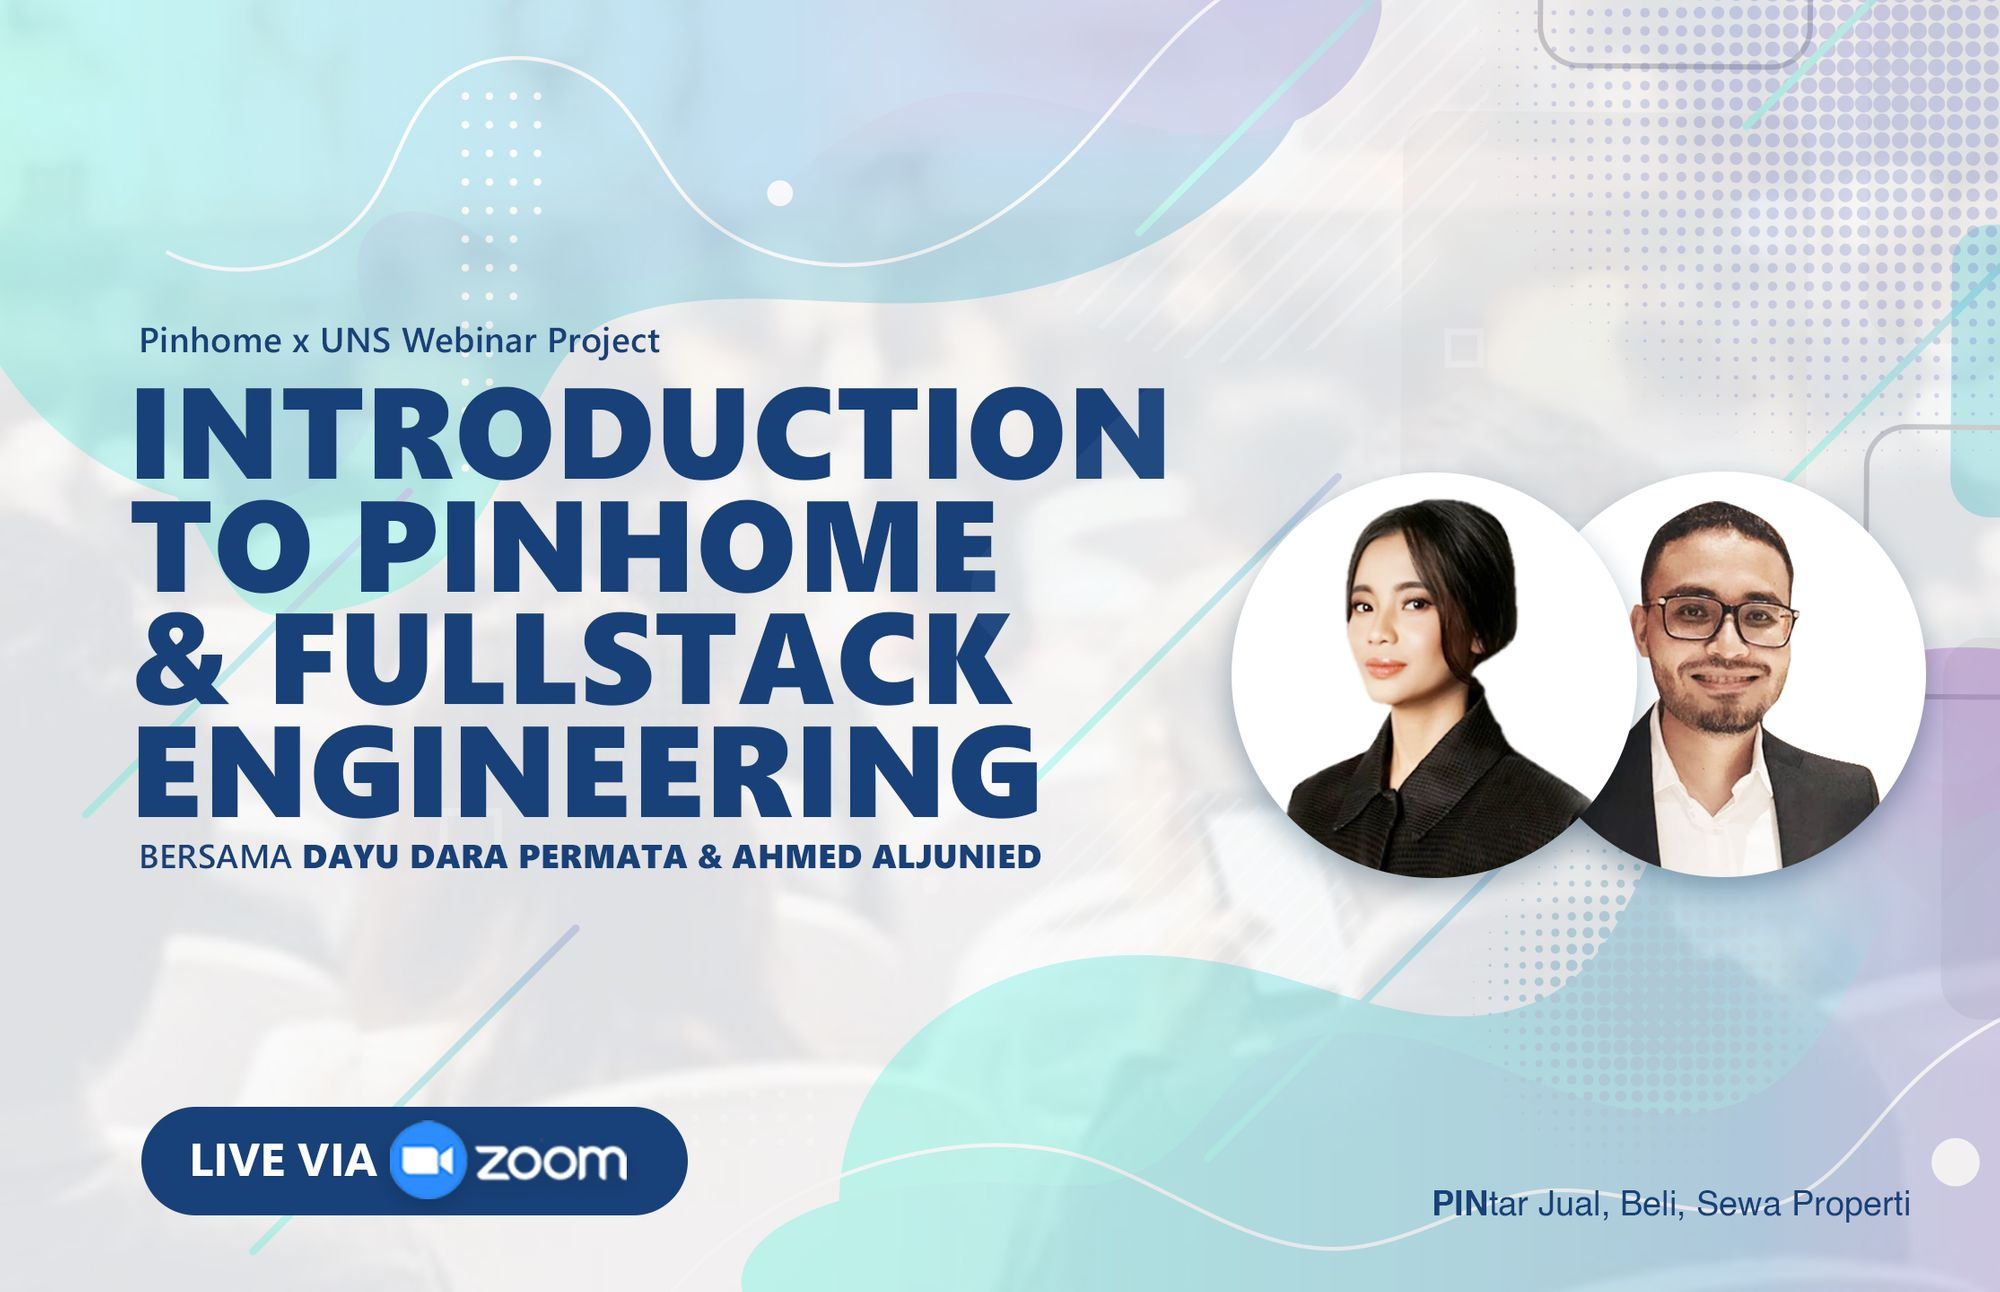 Webinar Pinhome x UNS : Introduction to Pinhome & Fullstack Engineering